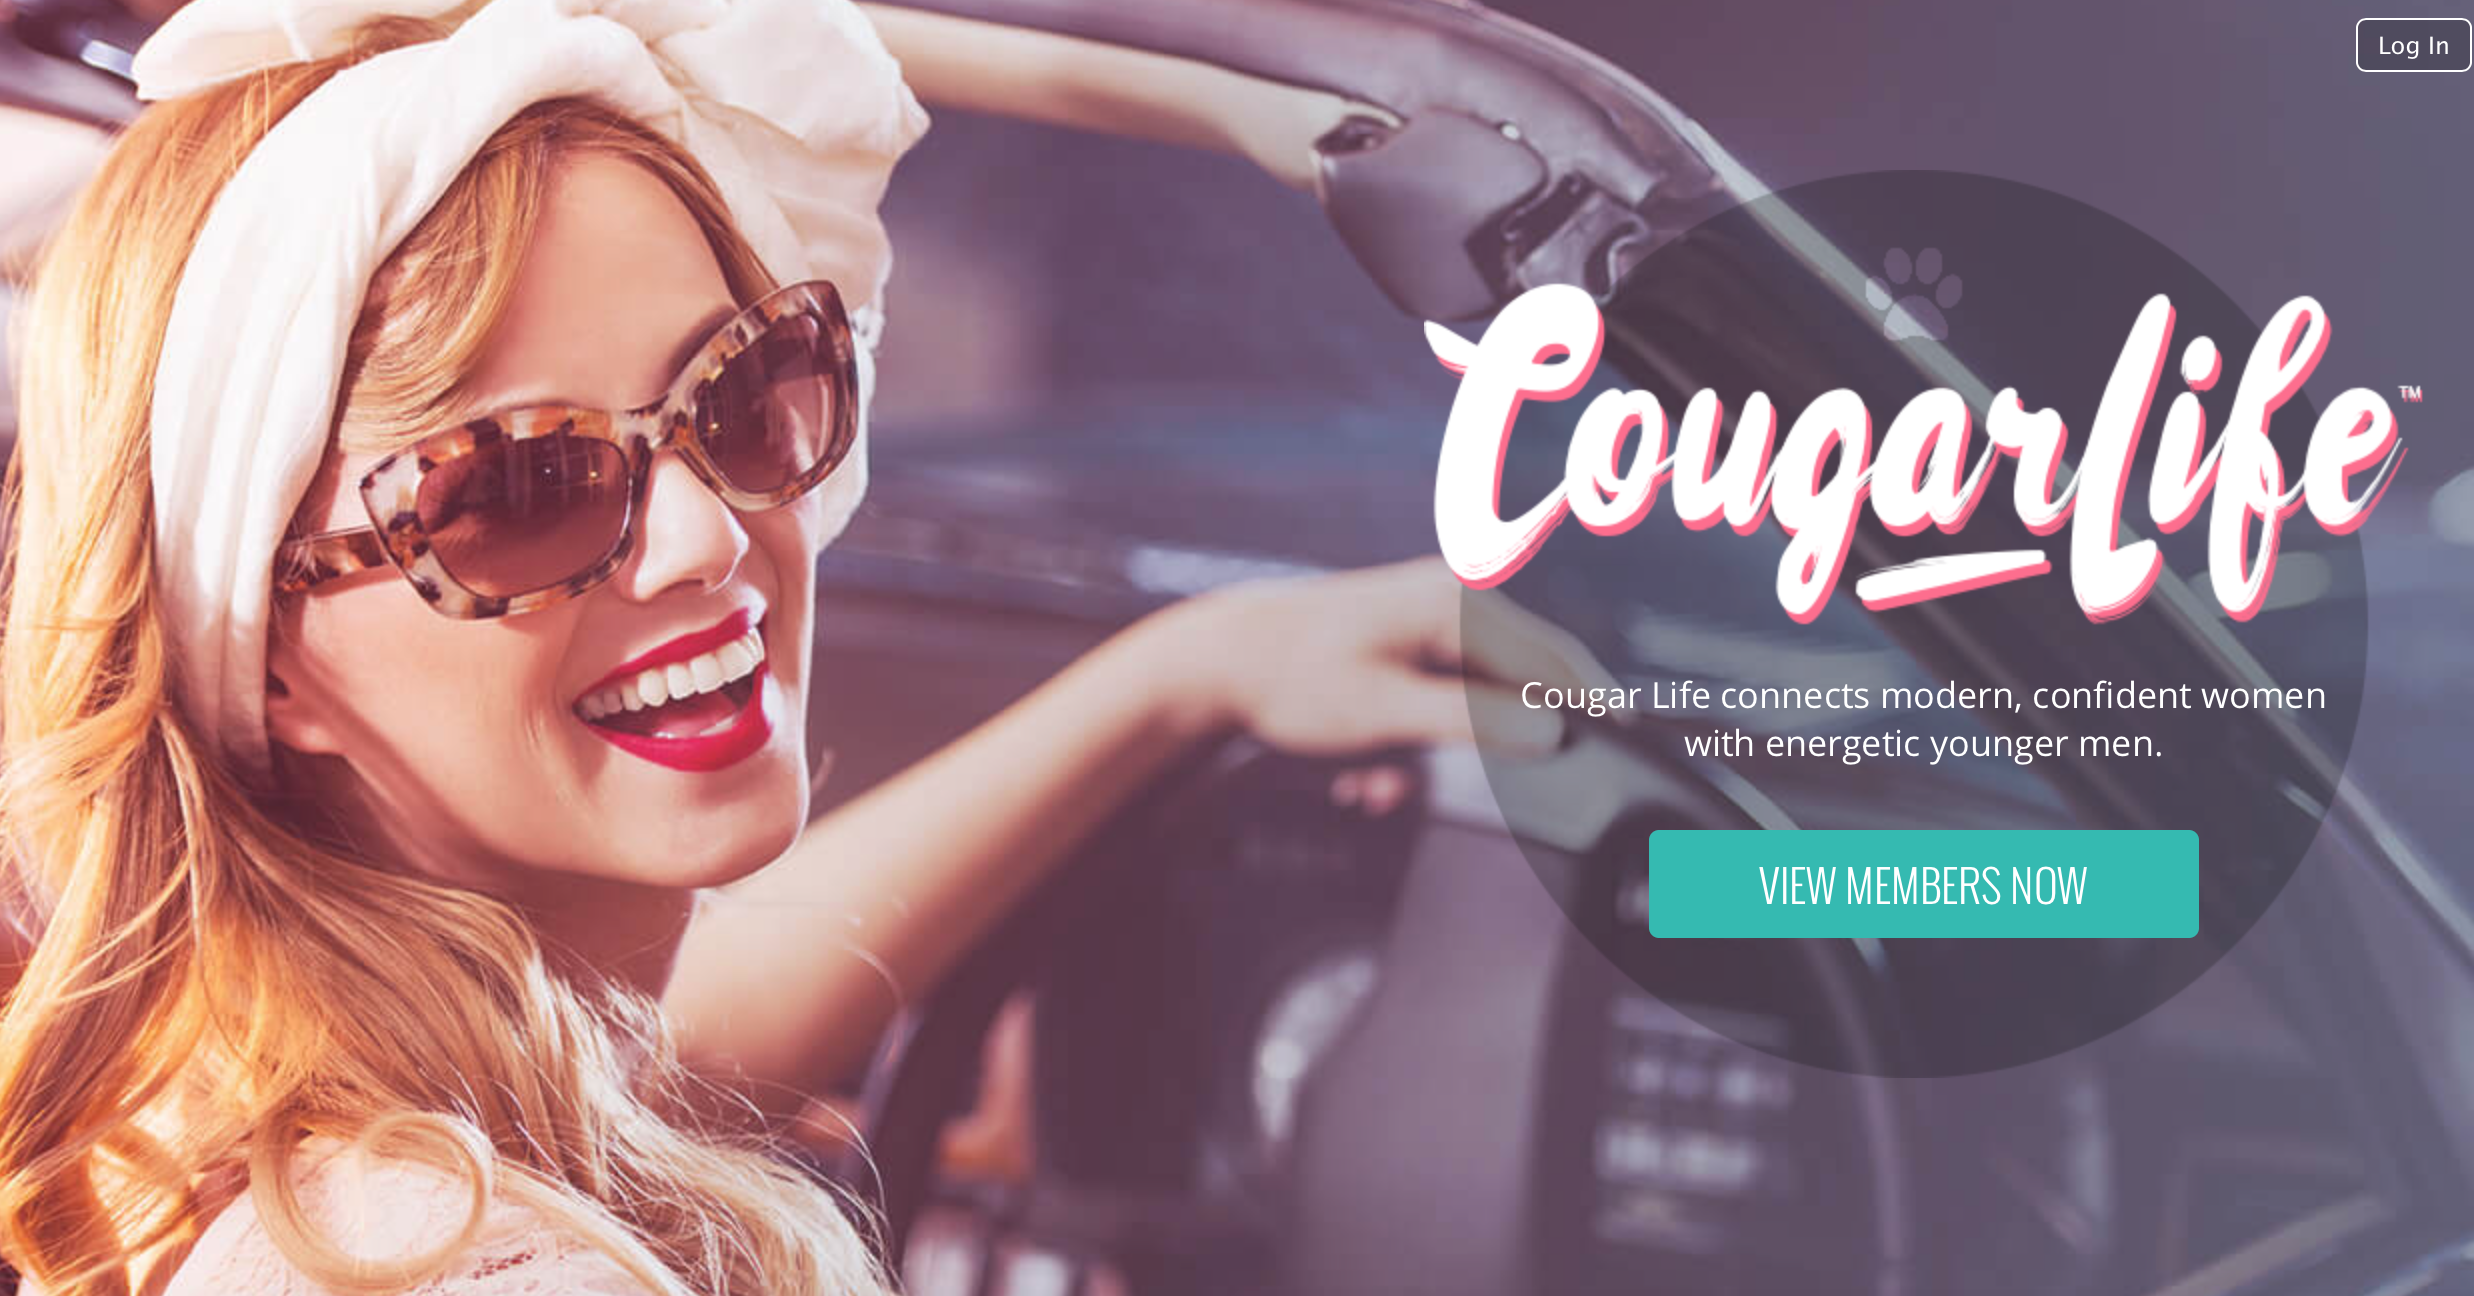 price cougars dating site Join the only 100% free cougar dating site: cougaredcom it's the site that helps cougars and younger men meet online meet older women and younger men and start cougar dating today.